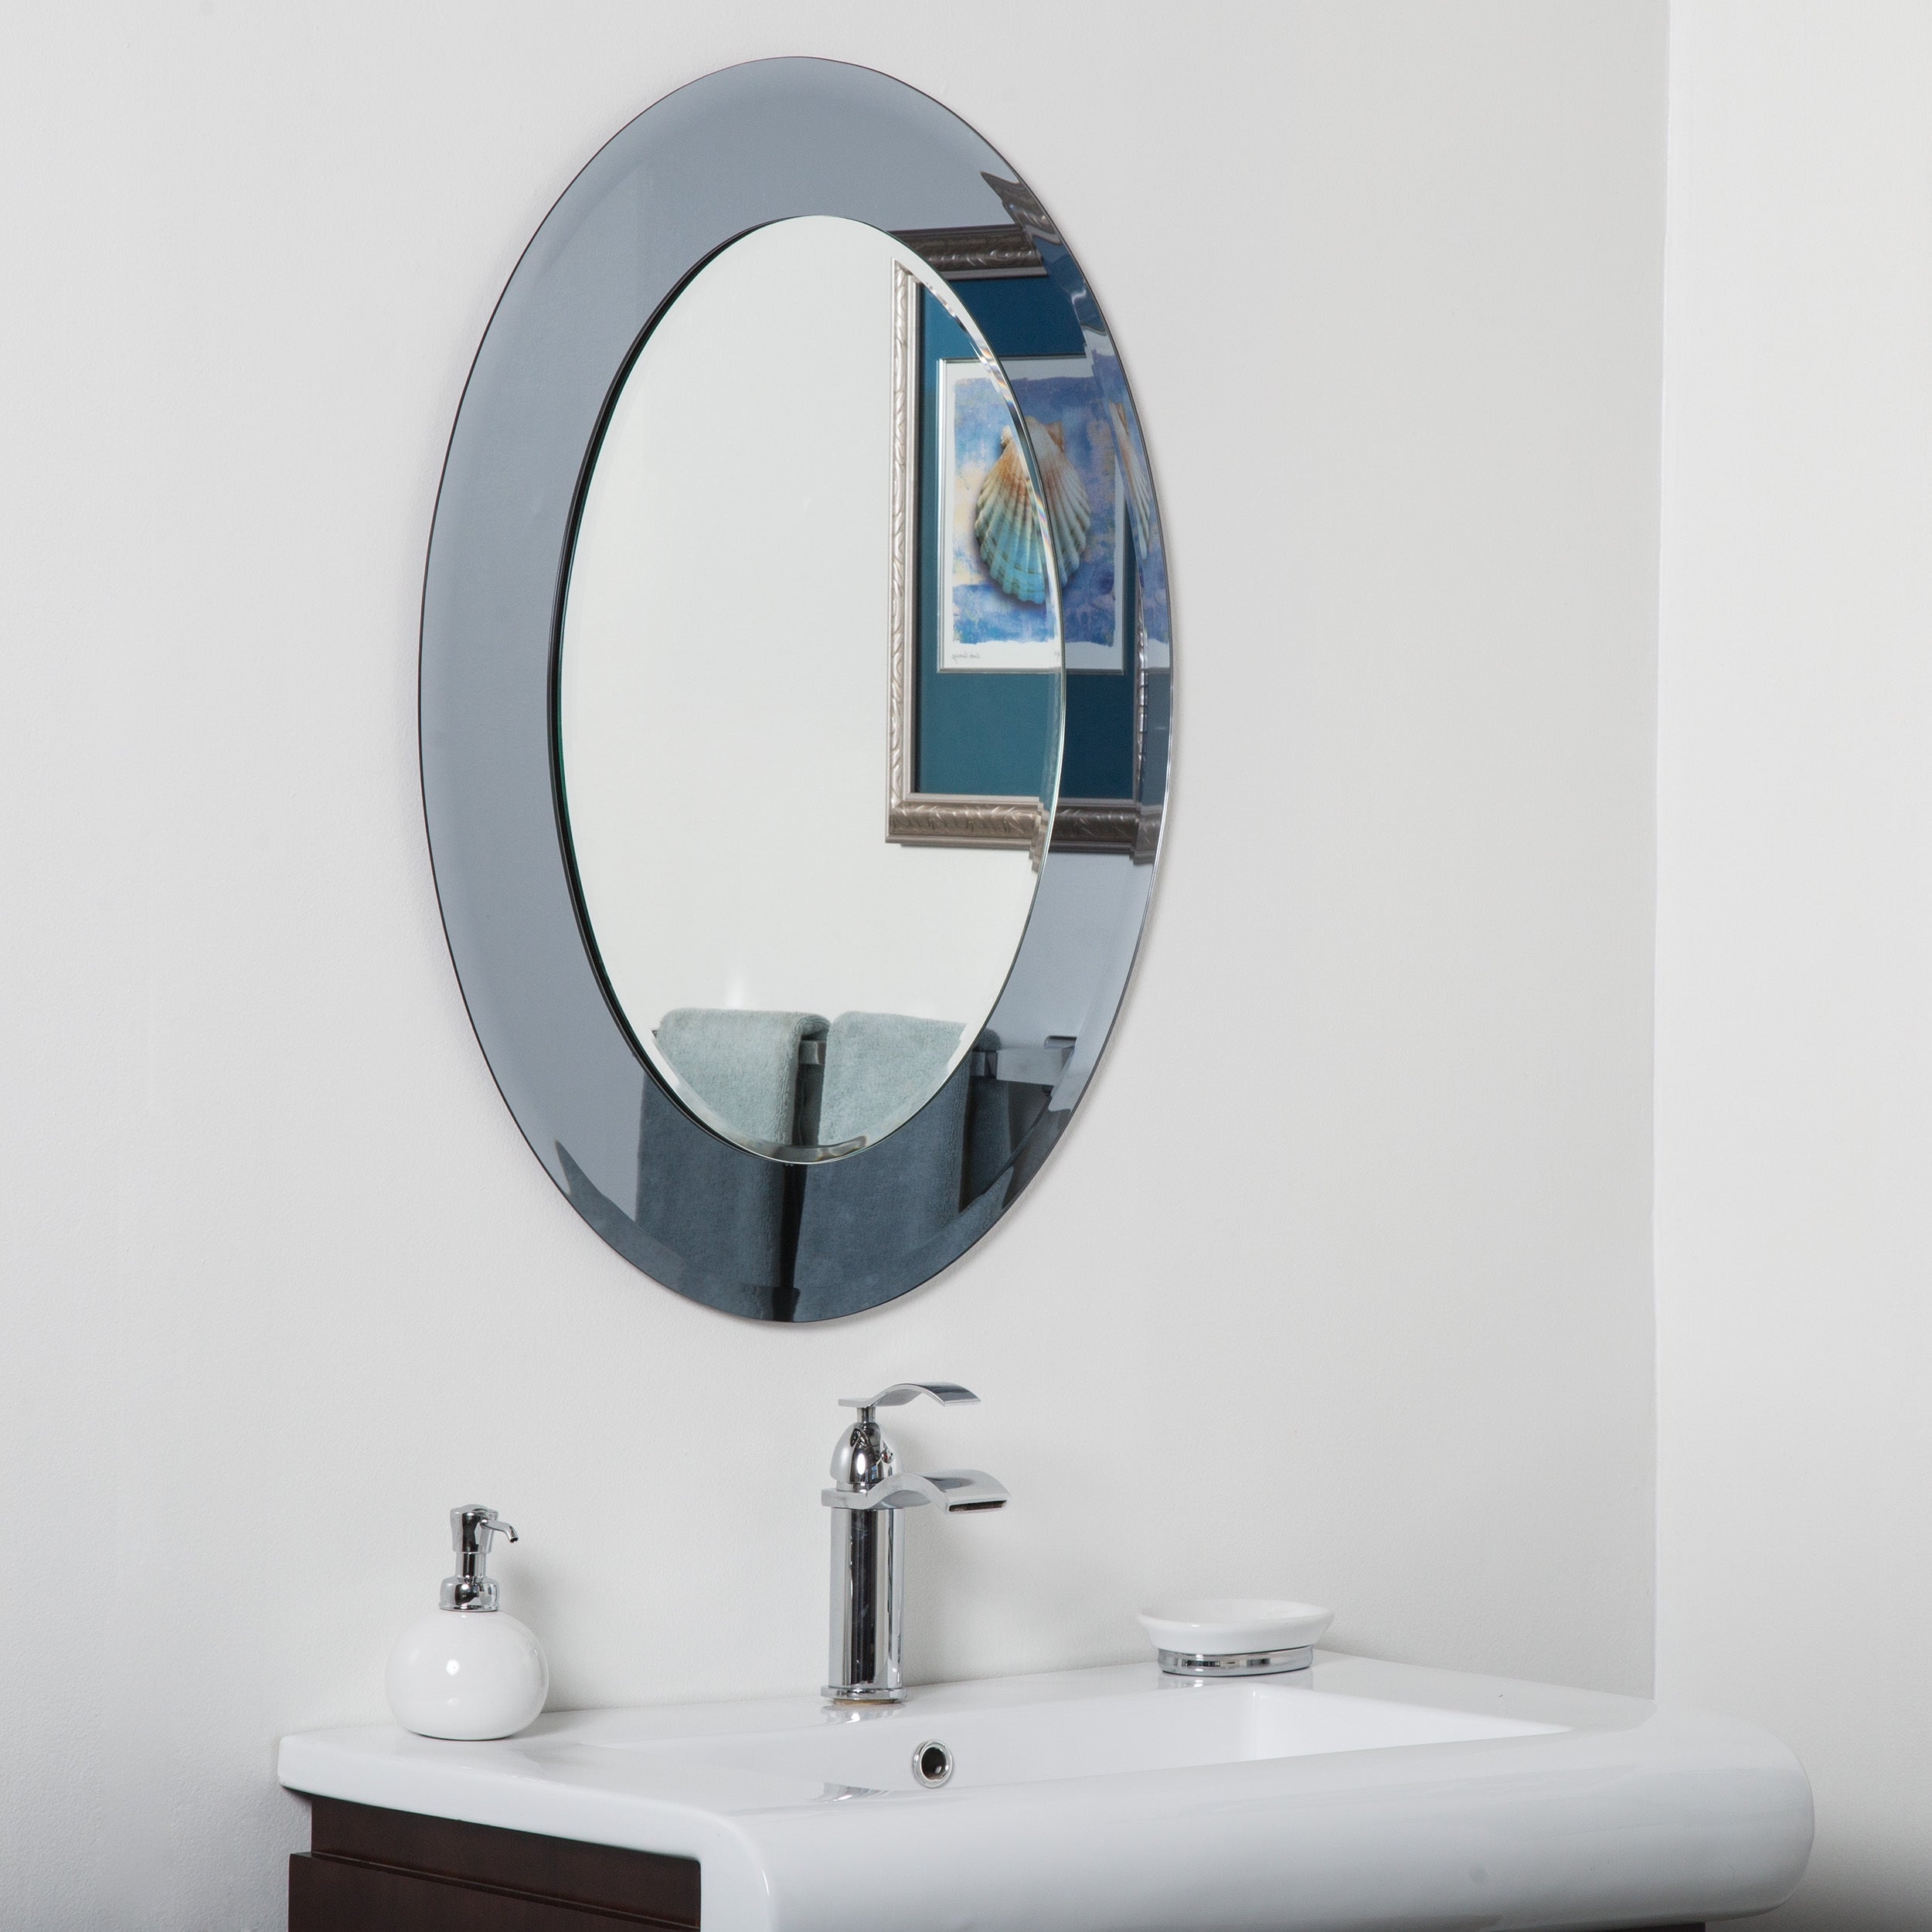 Shop Cayman Glass Beveled Round Bathroom Mirror Silver 31 5hx23 6wx 5d On Sale Overstock 13002682